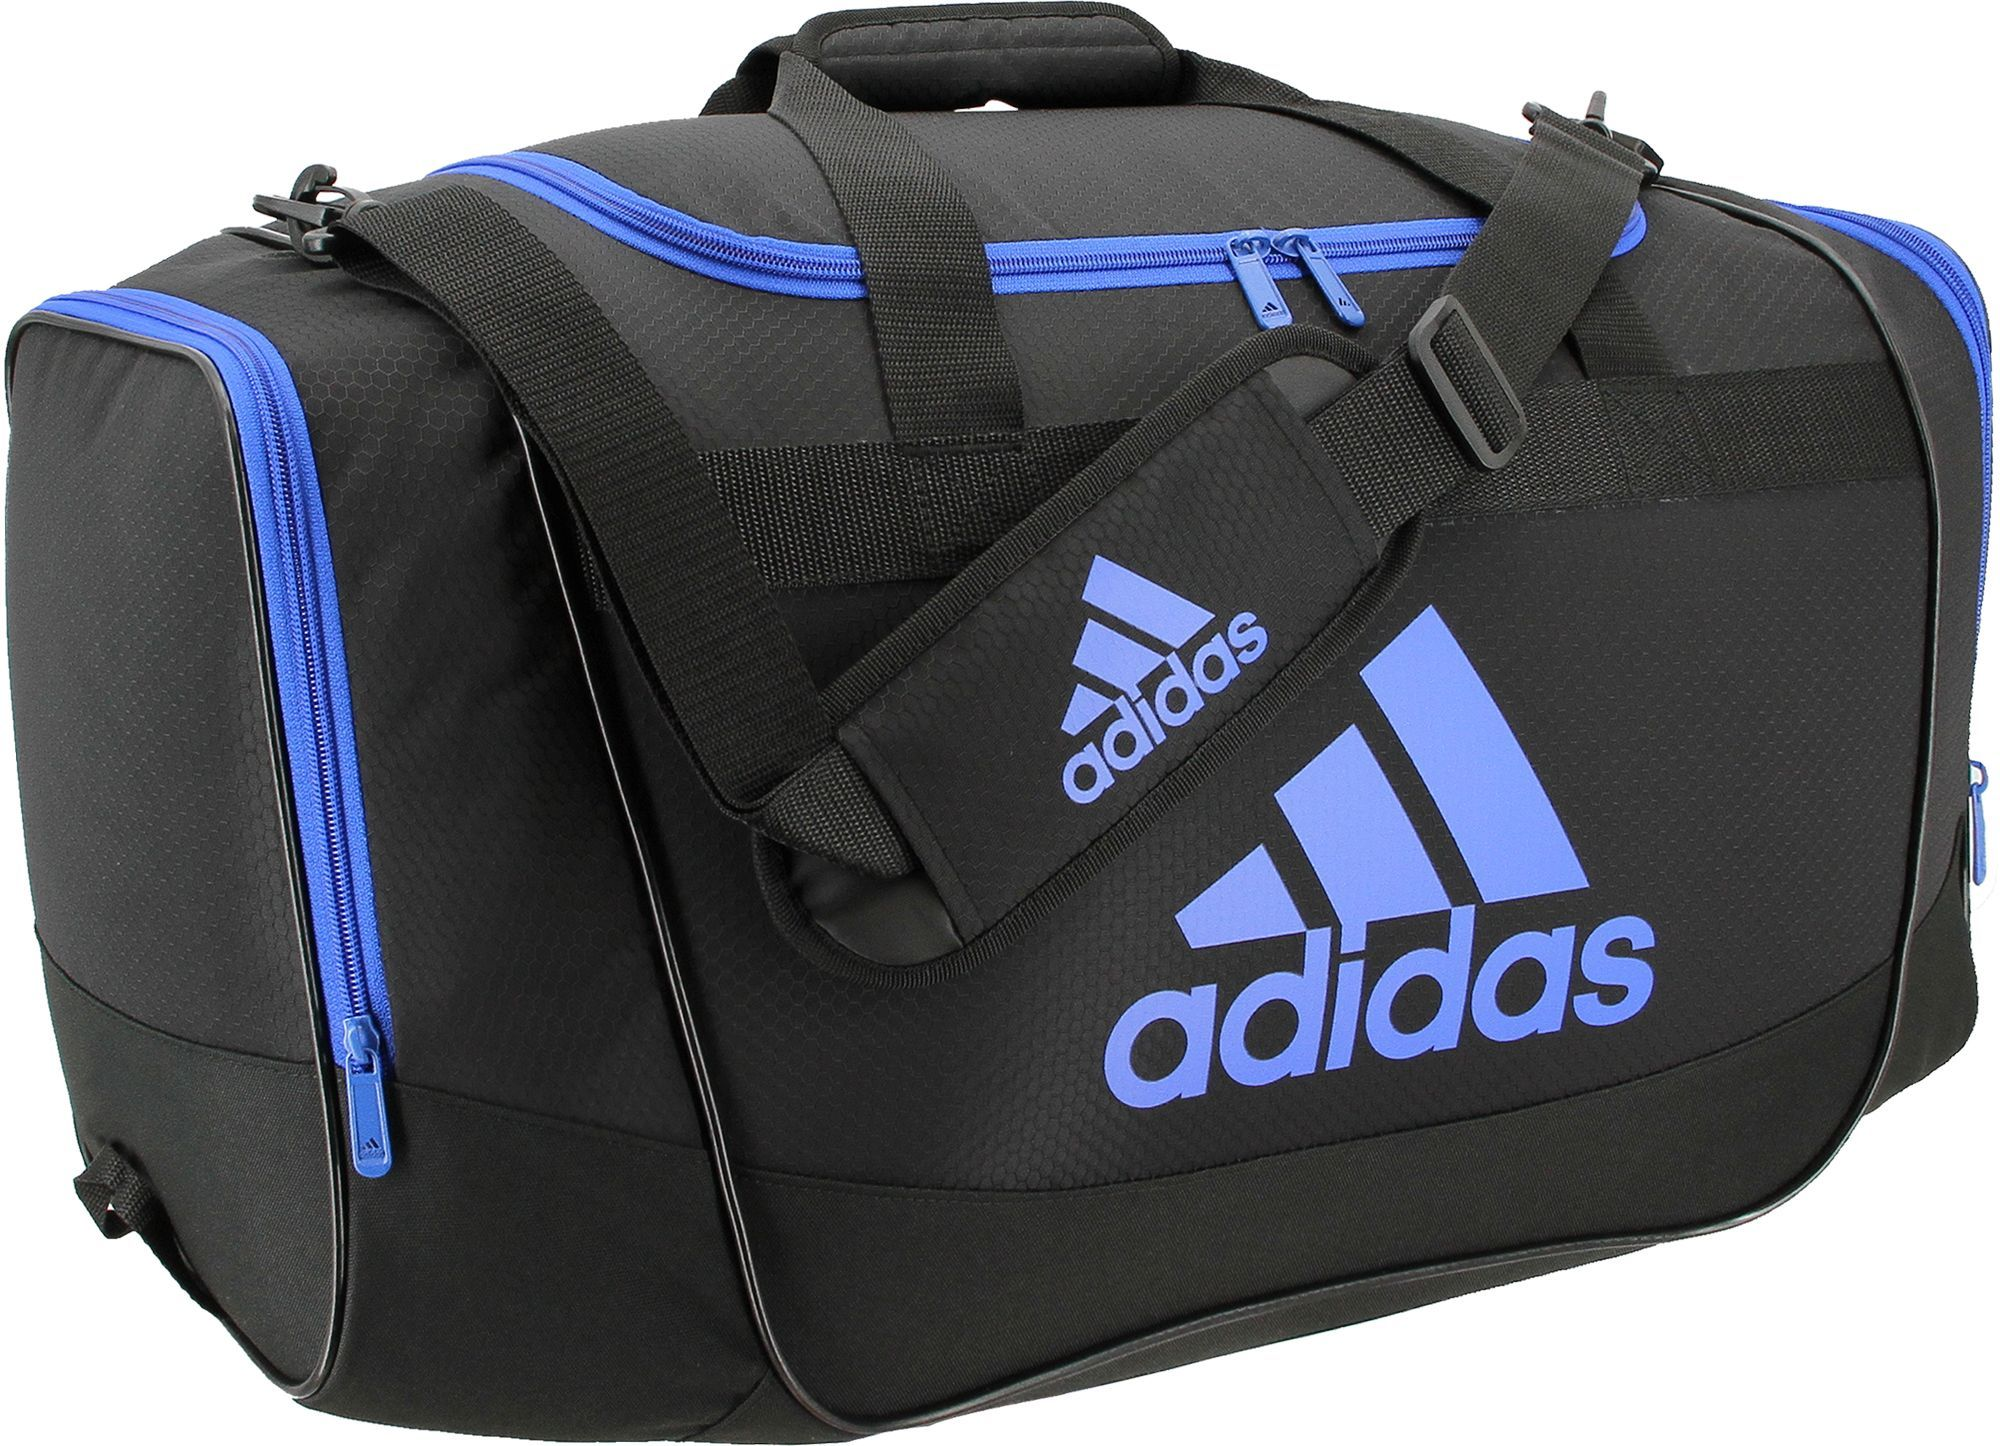 71e427006436 adidas Defender Medium Duffle Bag | Products | Adidas duffle bag ...